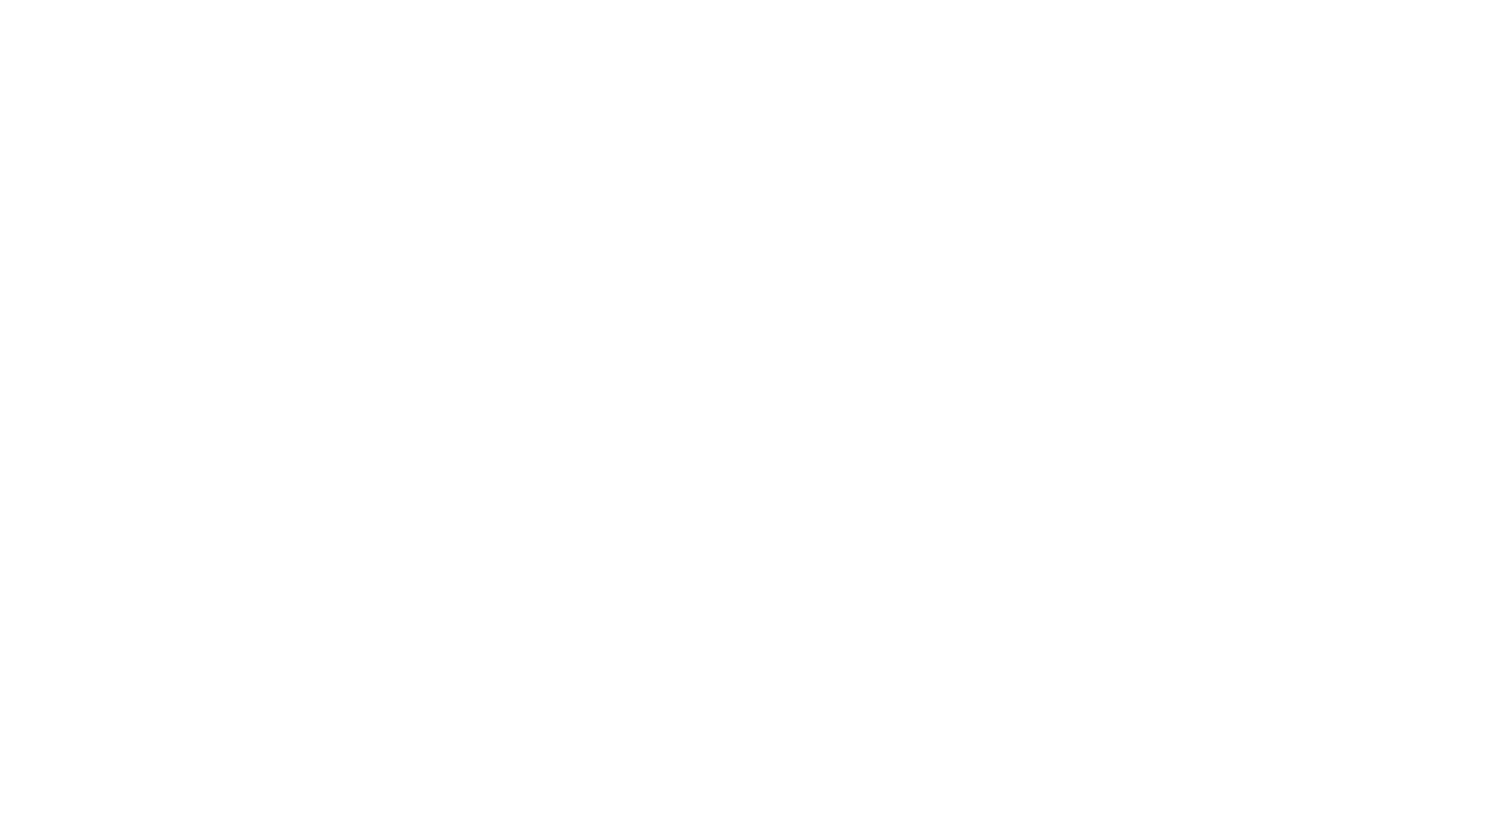 WHITEBOX EATERY